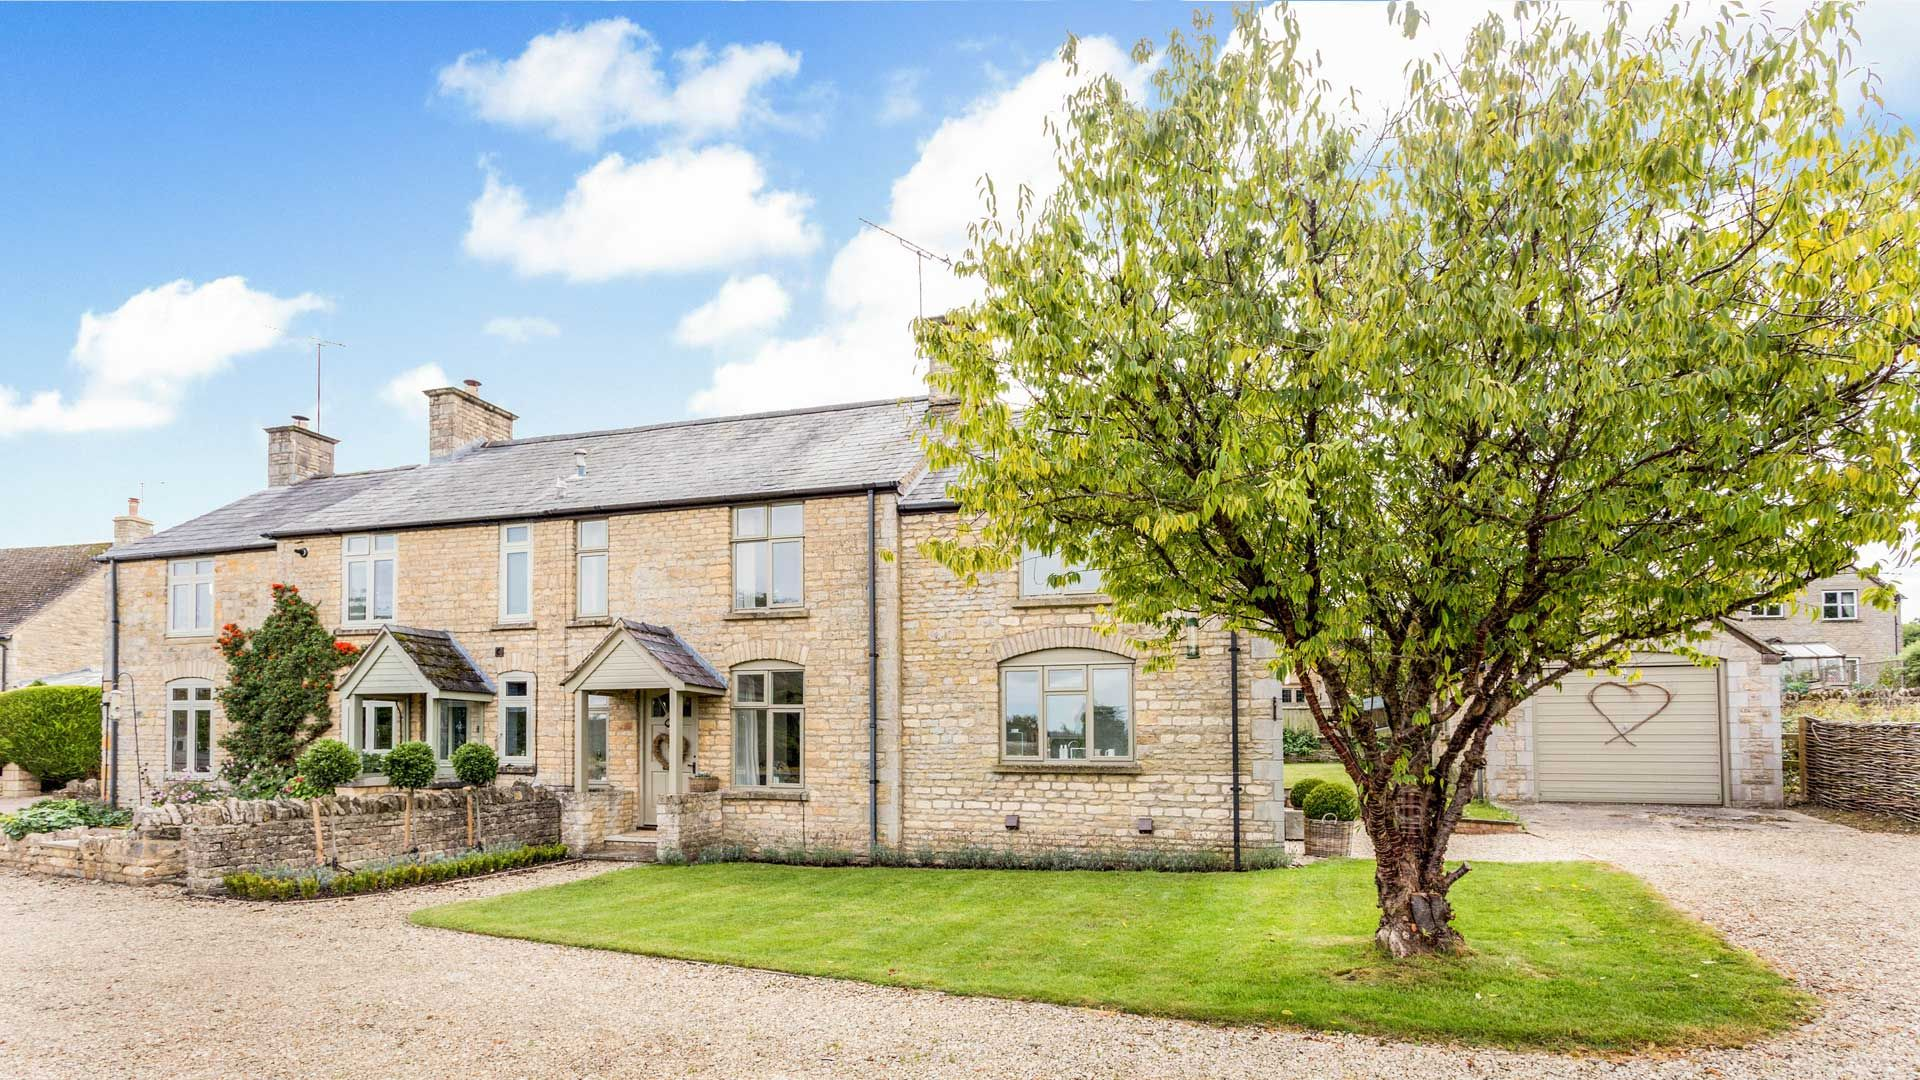 Orchard Cottage Frontage - StayCotswold